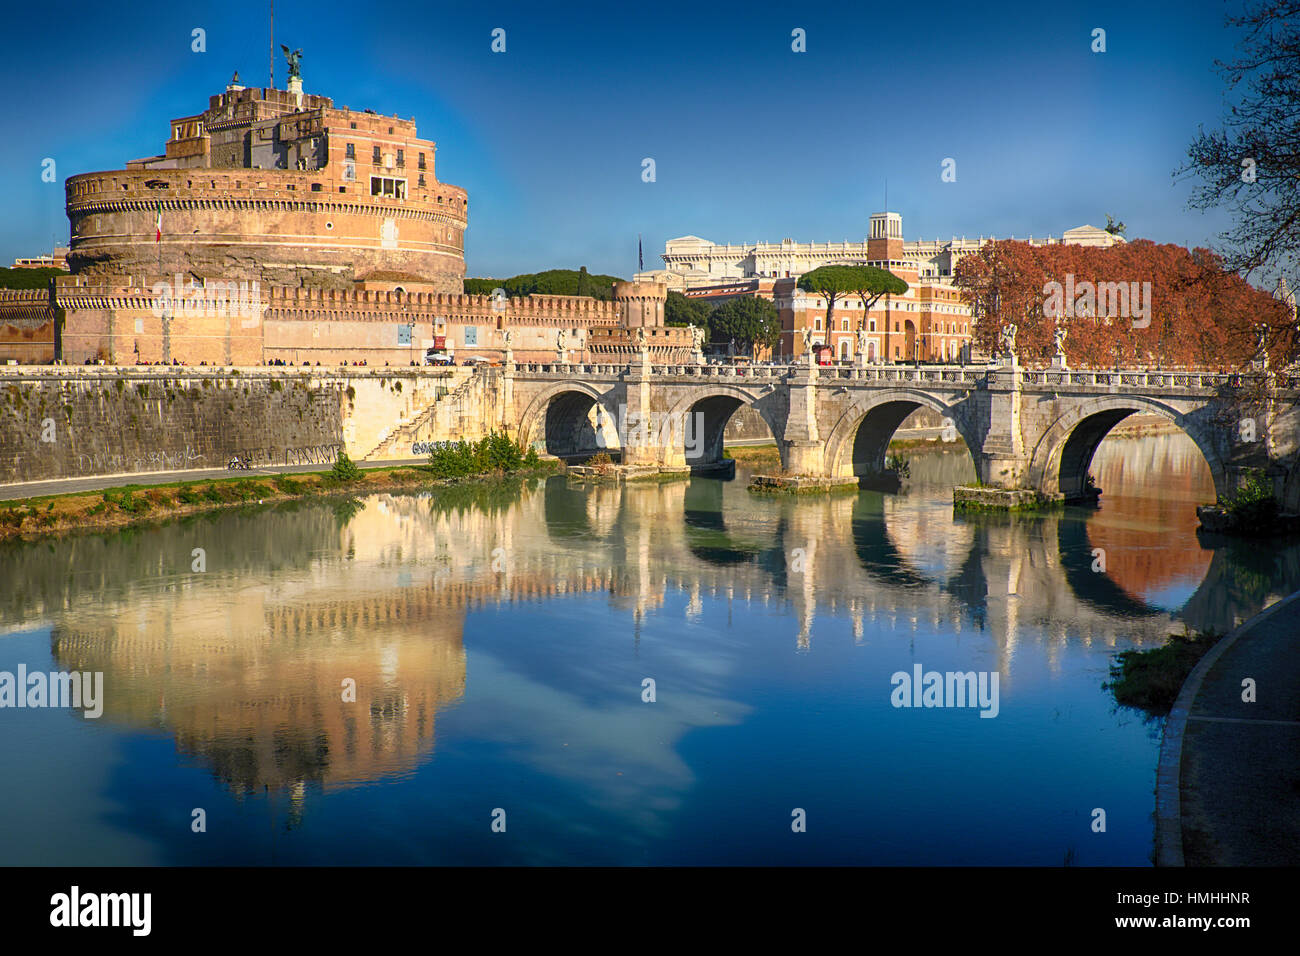 Midday Reflections of the Holy Angel Castle and Bridge in  Tiber River, Rome, Lazio, Italy - Stock Image